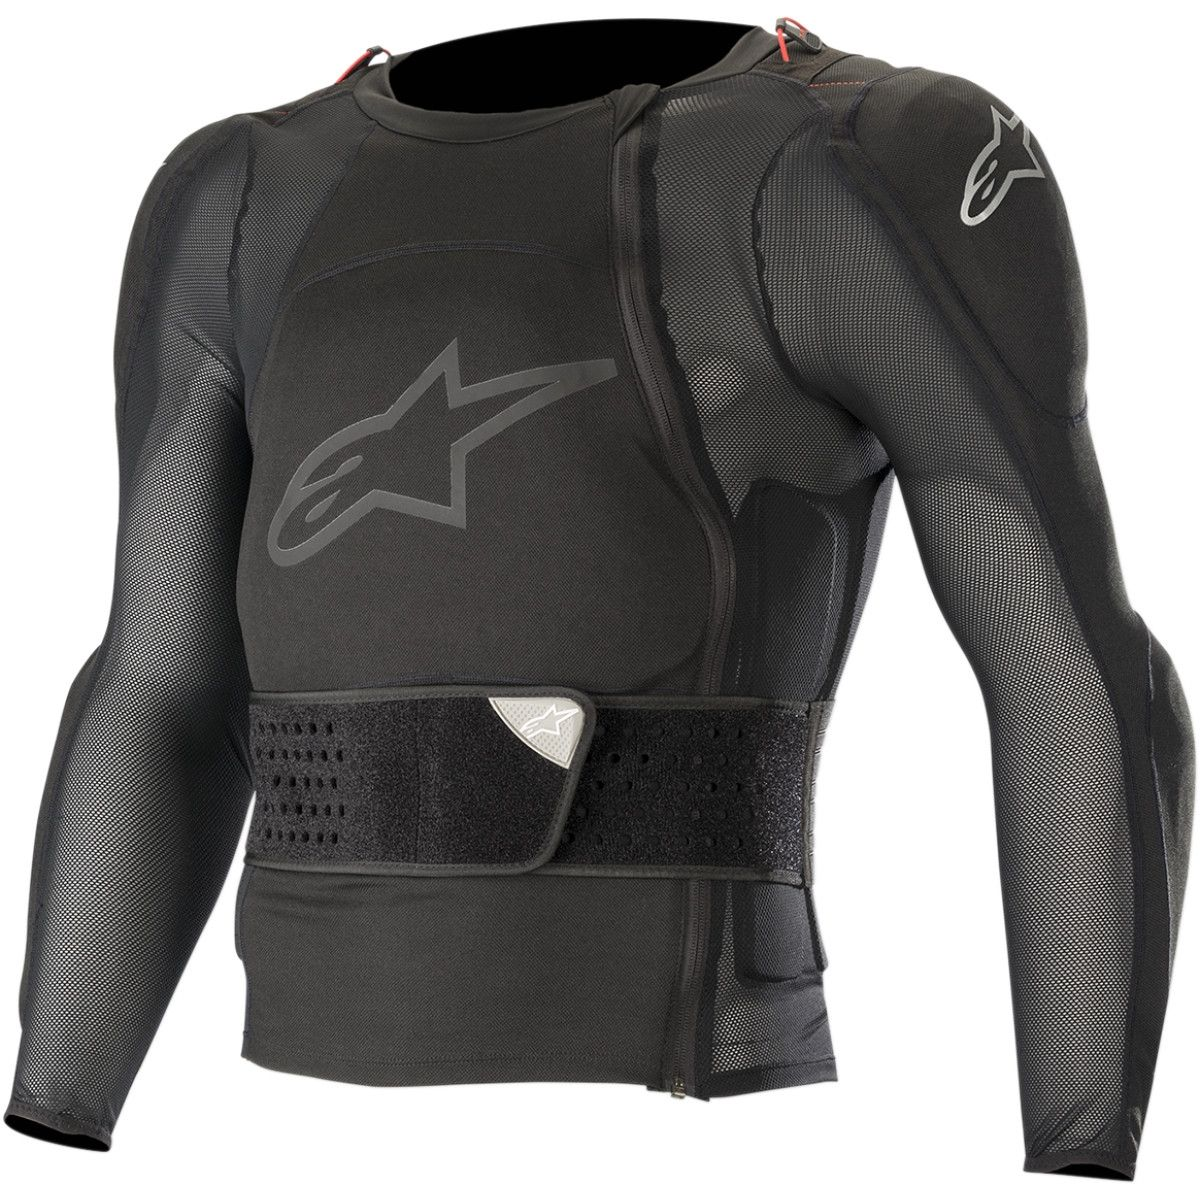 Alpinestars Protectievest Body Protector Sequence Long Sleeve Black